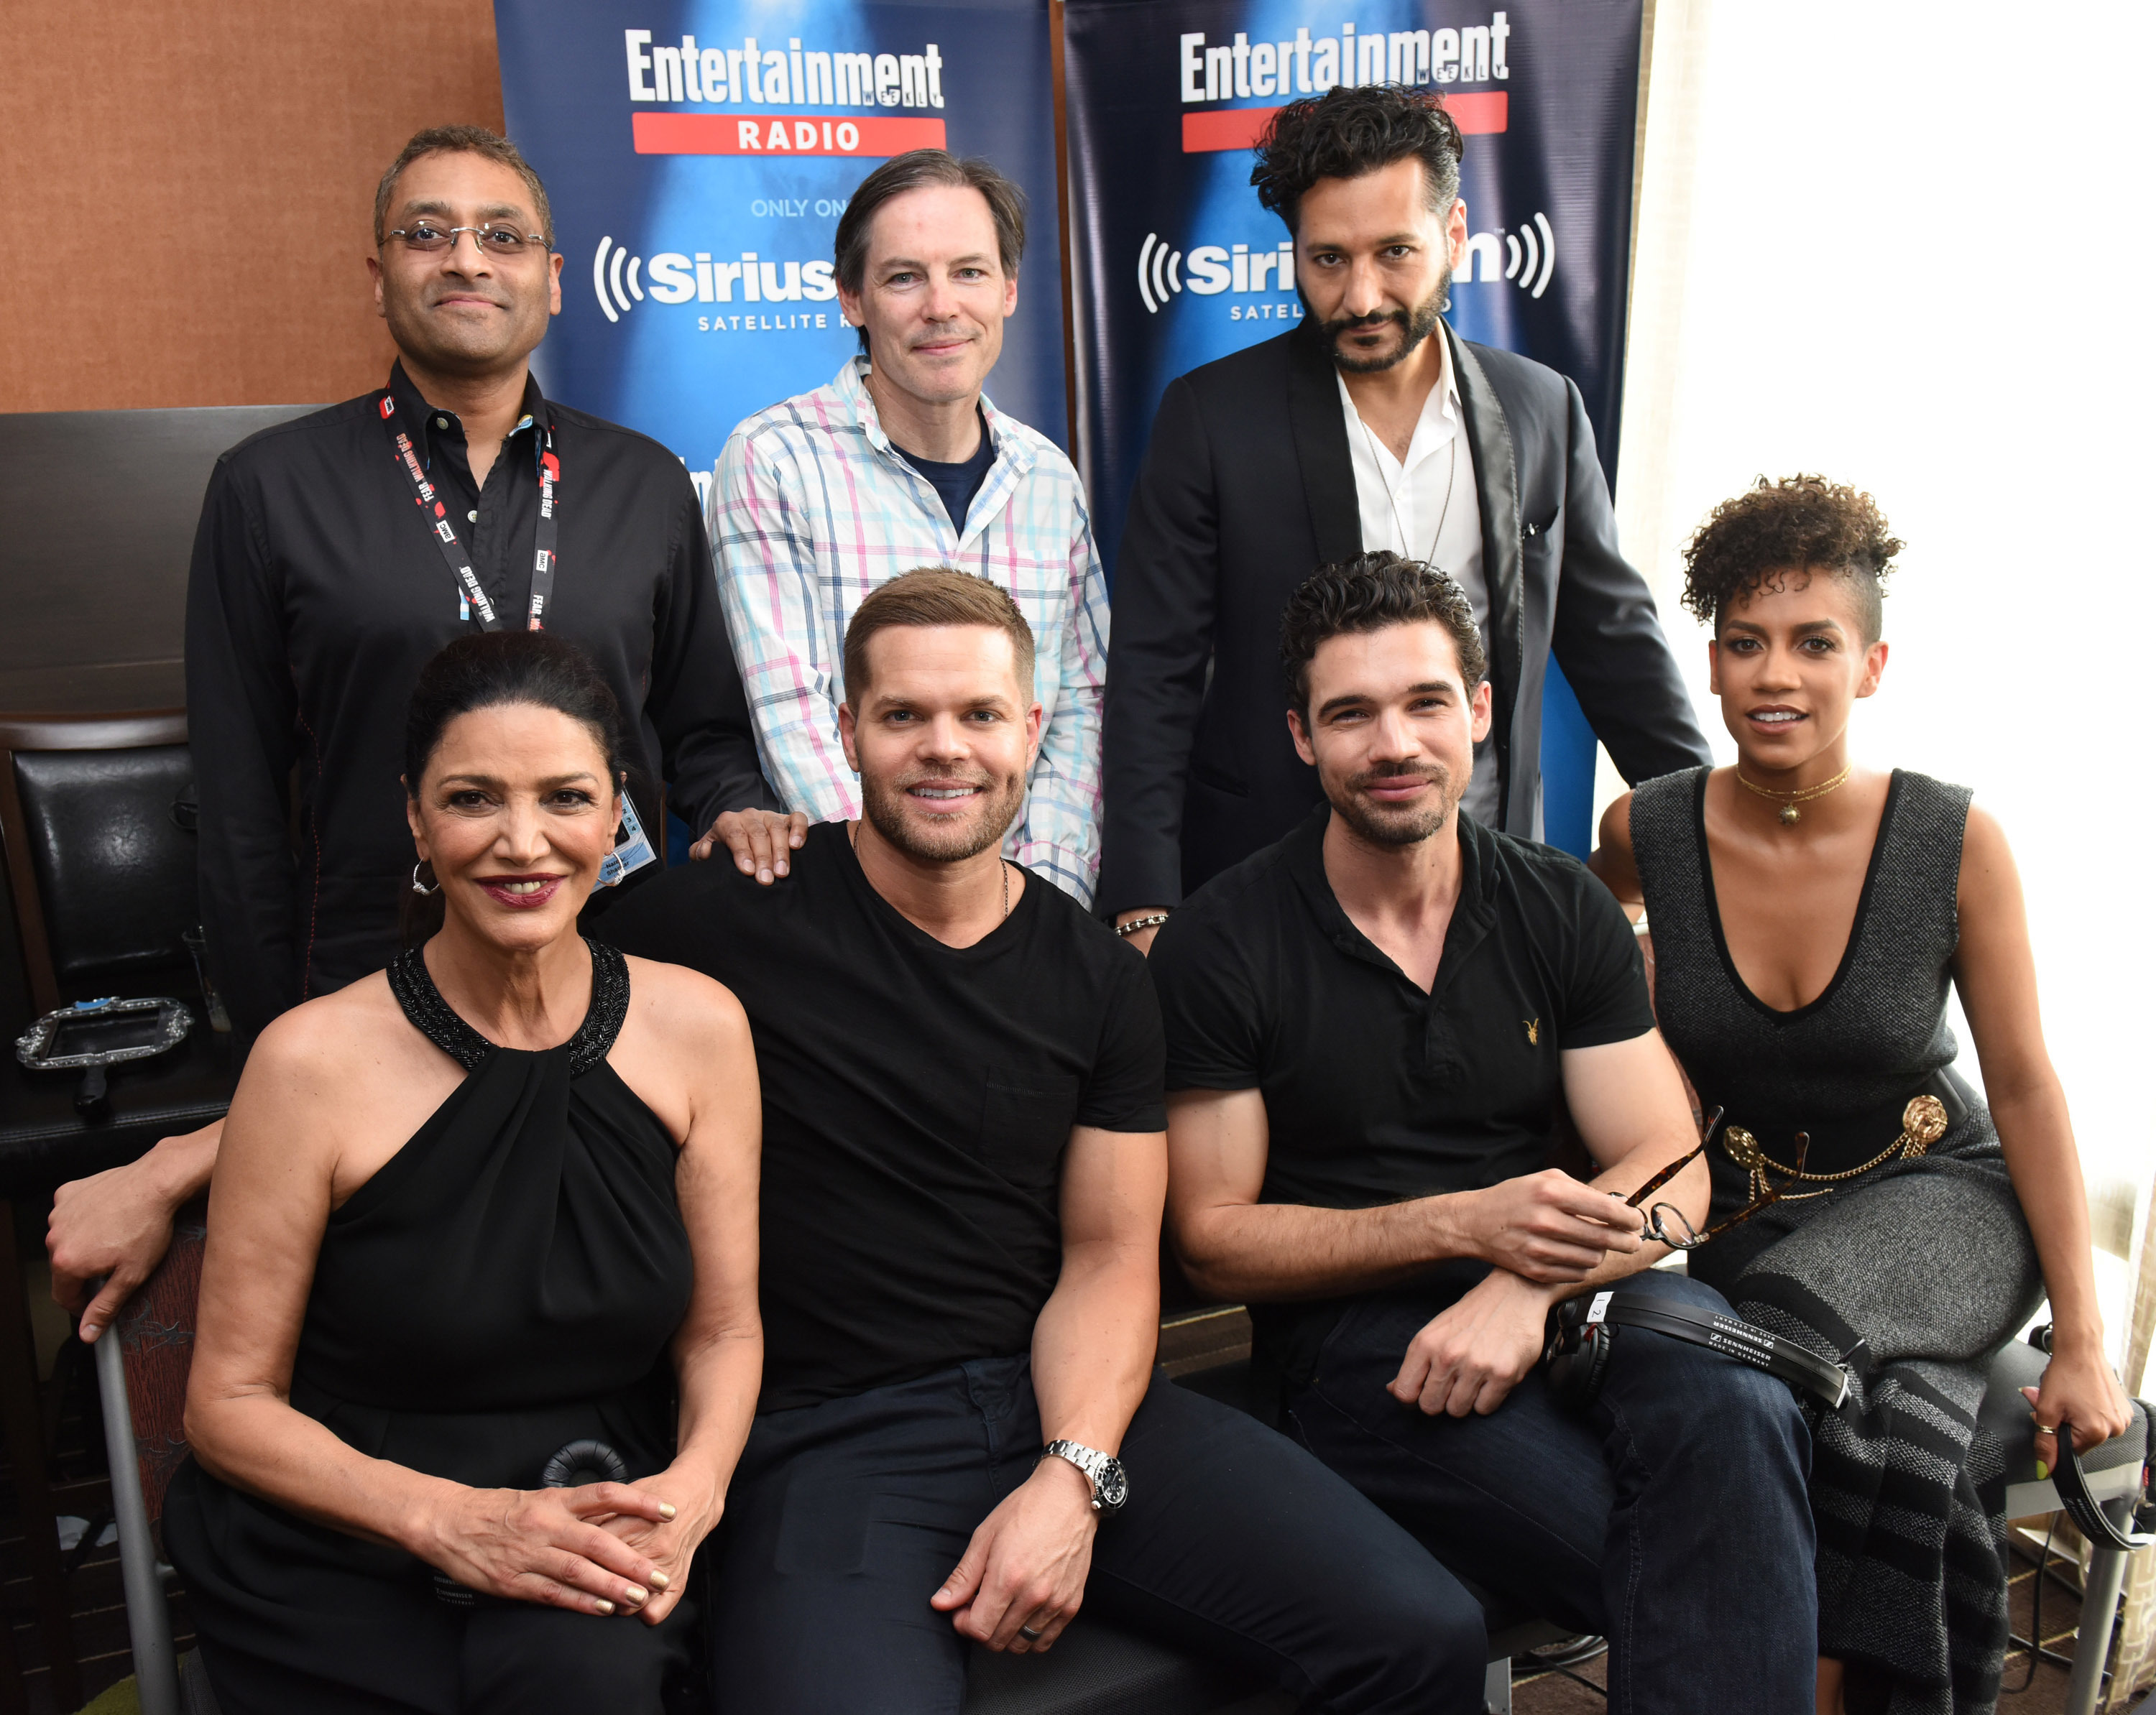 Producers Naren Shankar and Mark Fergus and actors Cas Anvar, Shohreh Aghdashloo, Wes Chatham, Steven Strait, and Dominique Tipper.